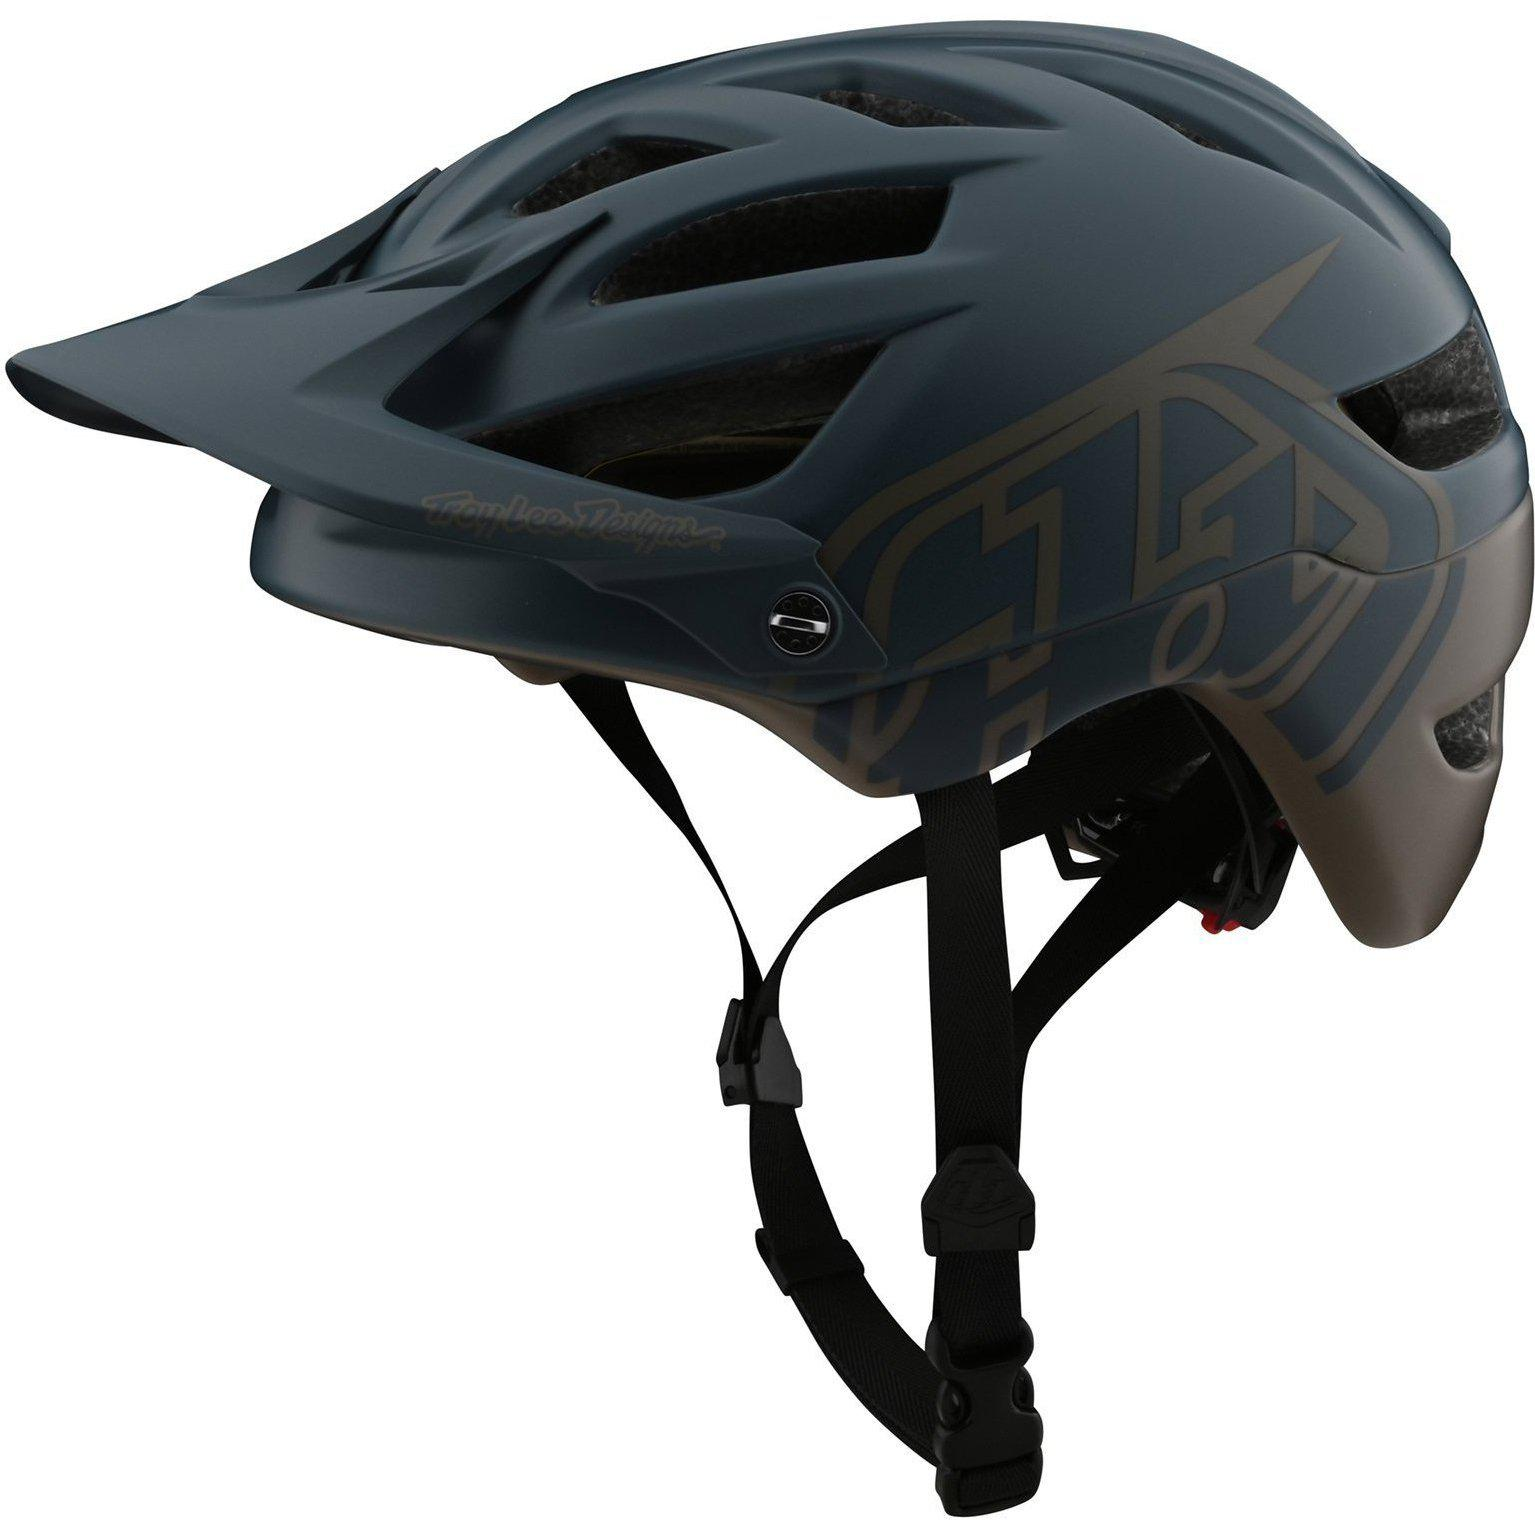 Troy Lee Designs-Troy Lee Designs A1 Classic MIPS Helmet-Classic - Gray/Walnut-M/L-TLD190111123-saddleback-elite-performance-cycling